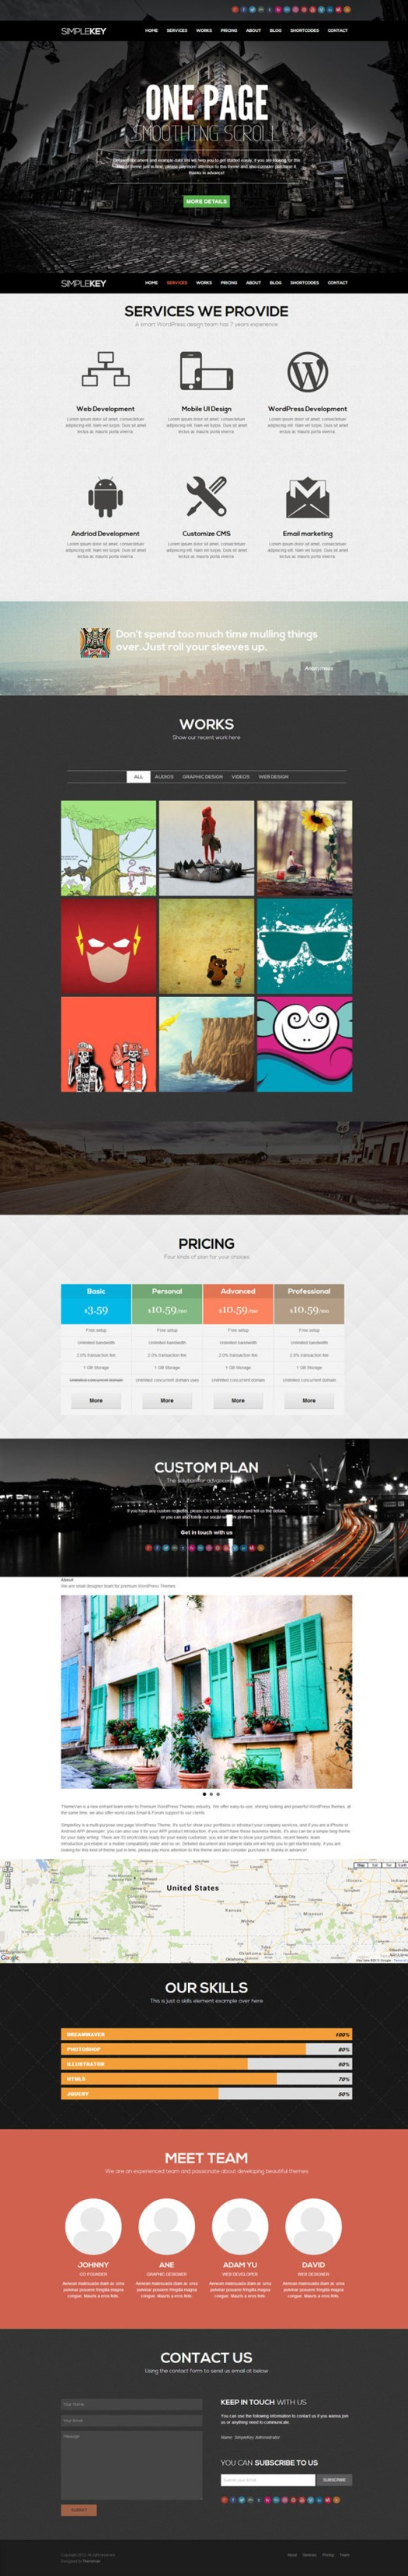 SimpleKey Application Developer landing page Theme